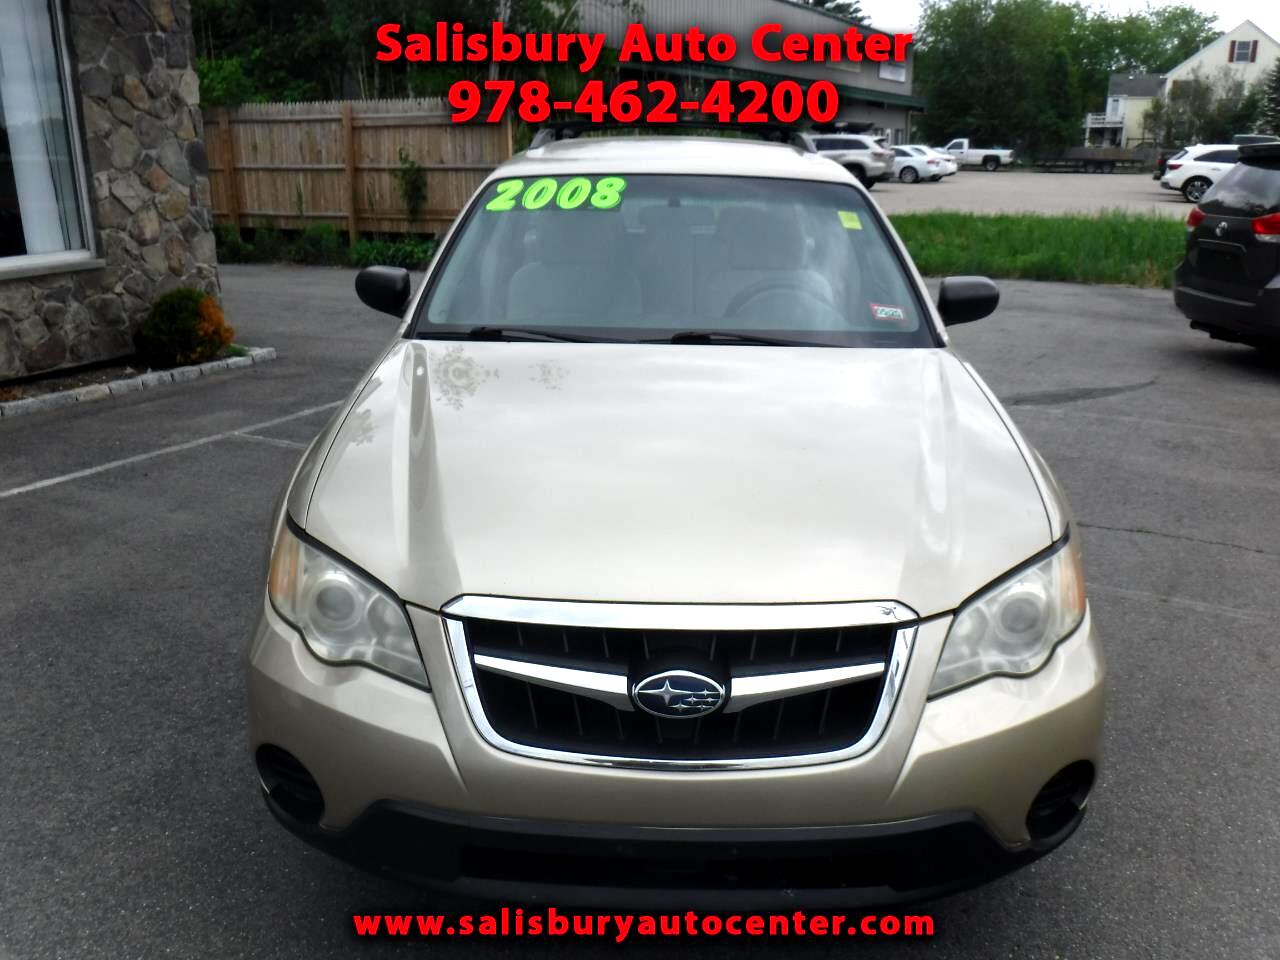 Subaru Outback Base 2008